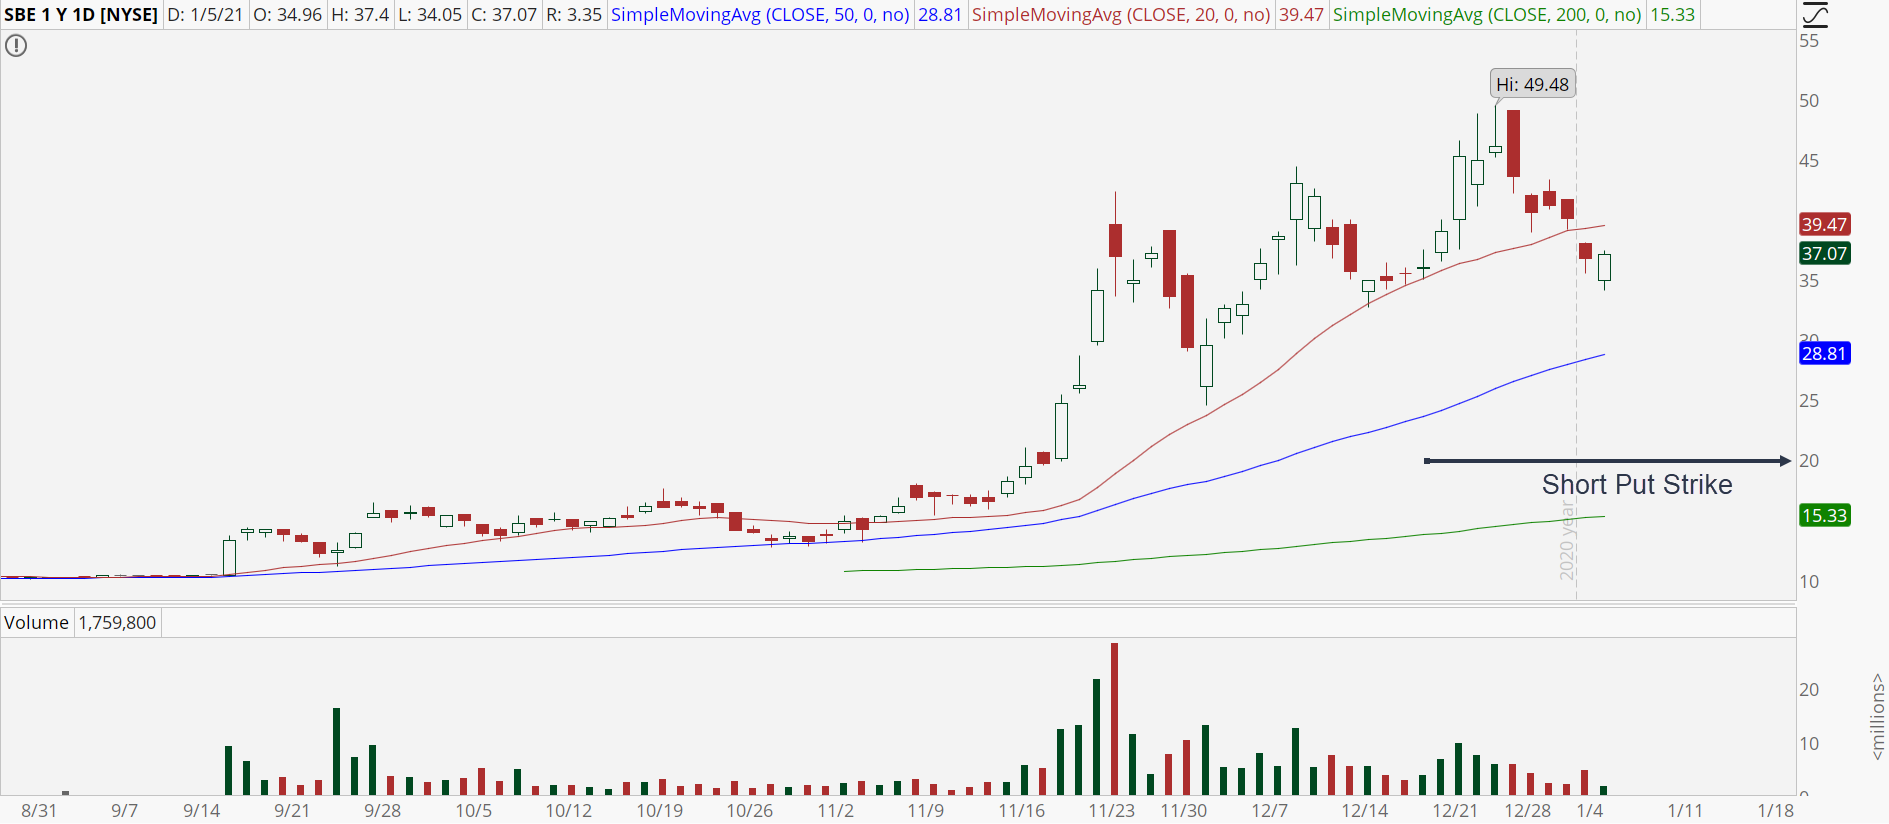 SwitchBack Energy (SBE) chart with bull retracement pattern